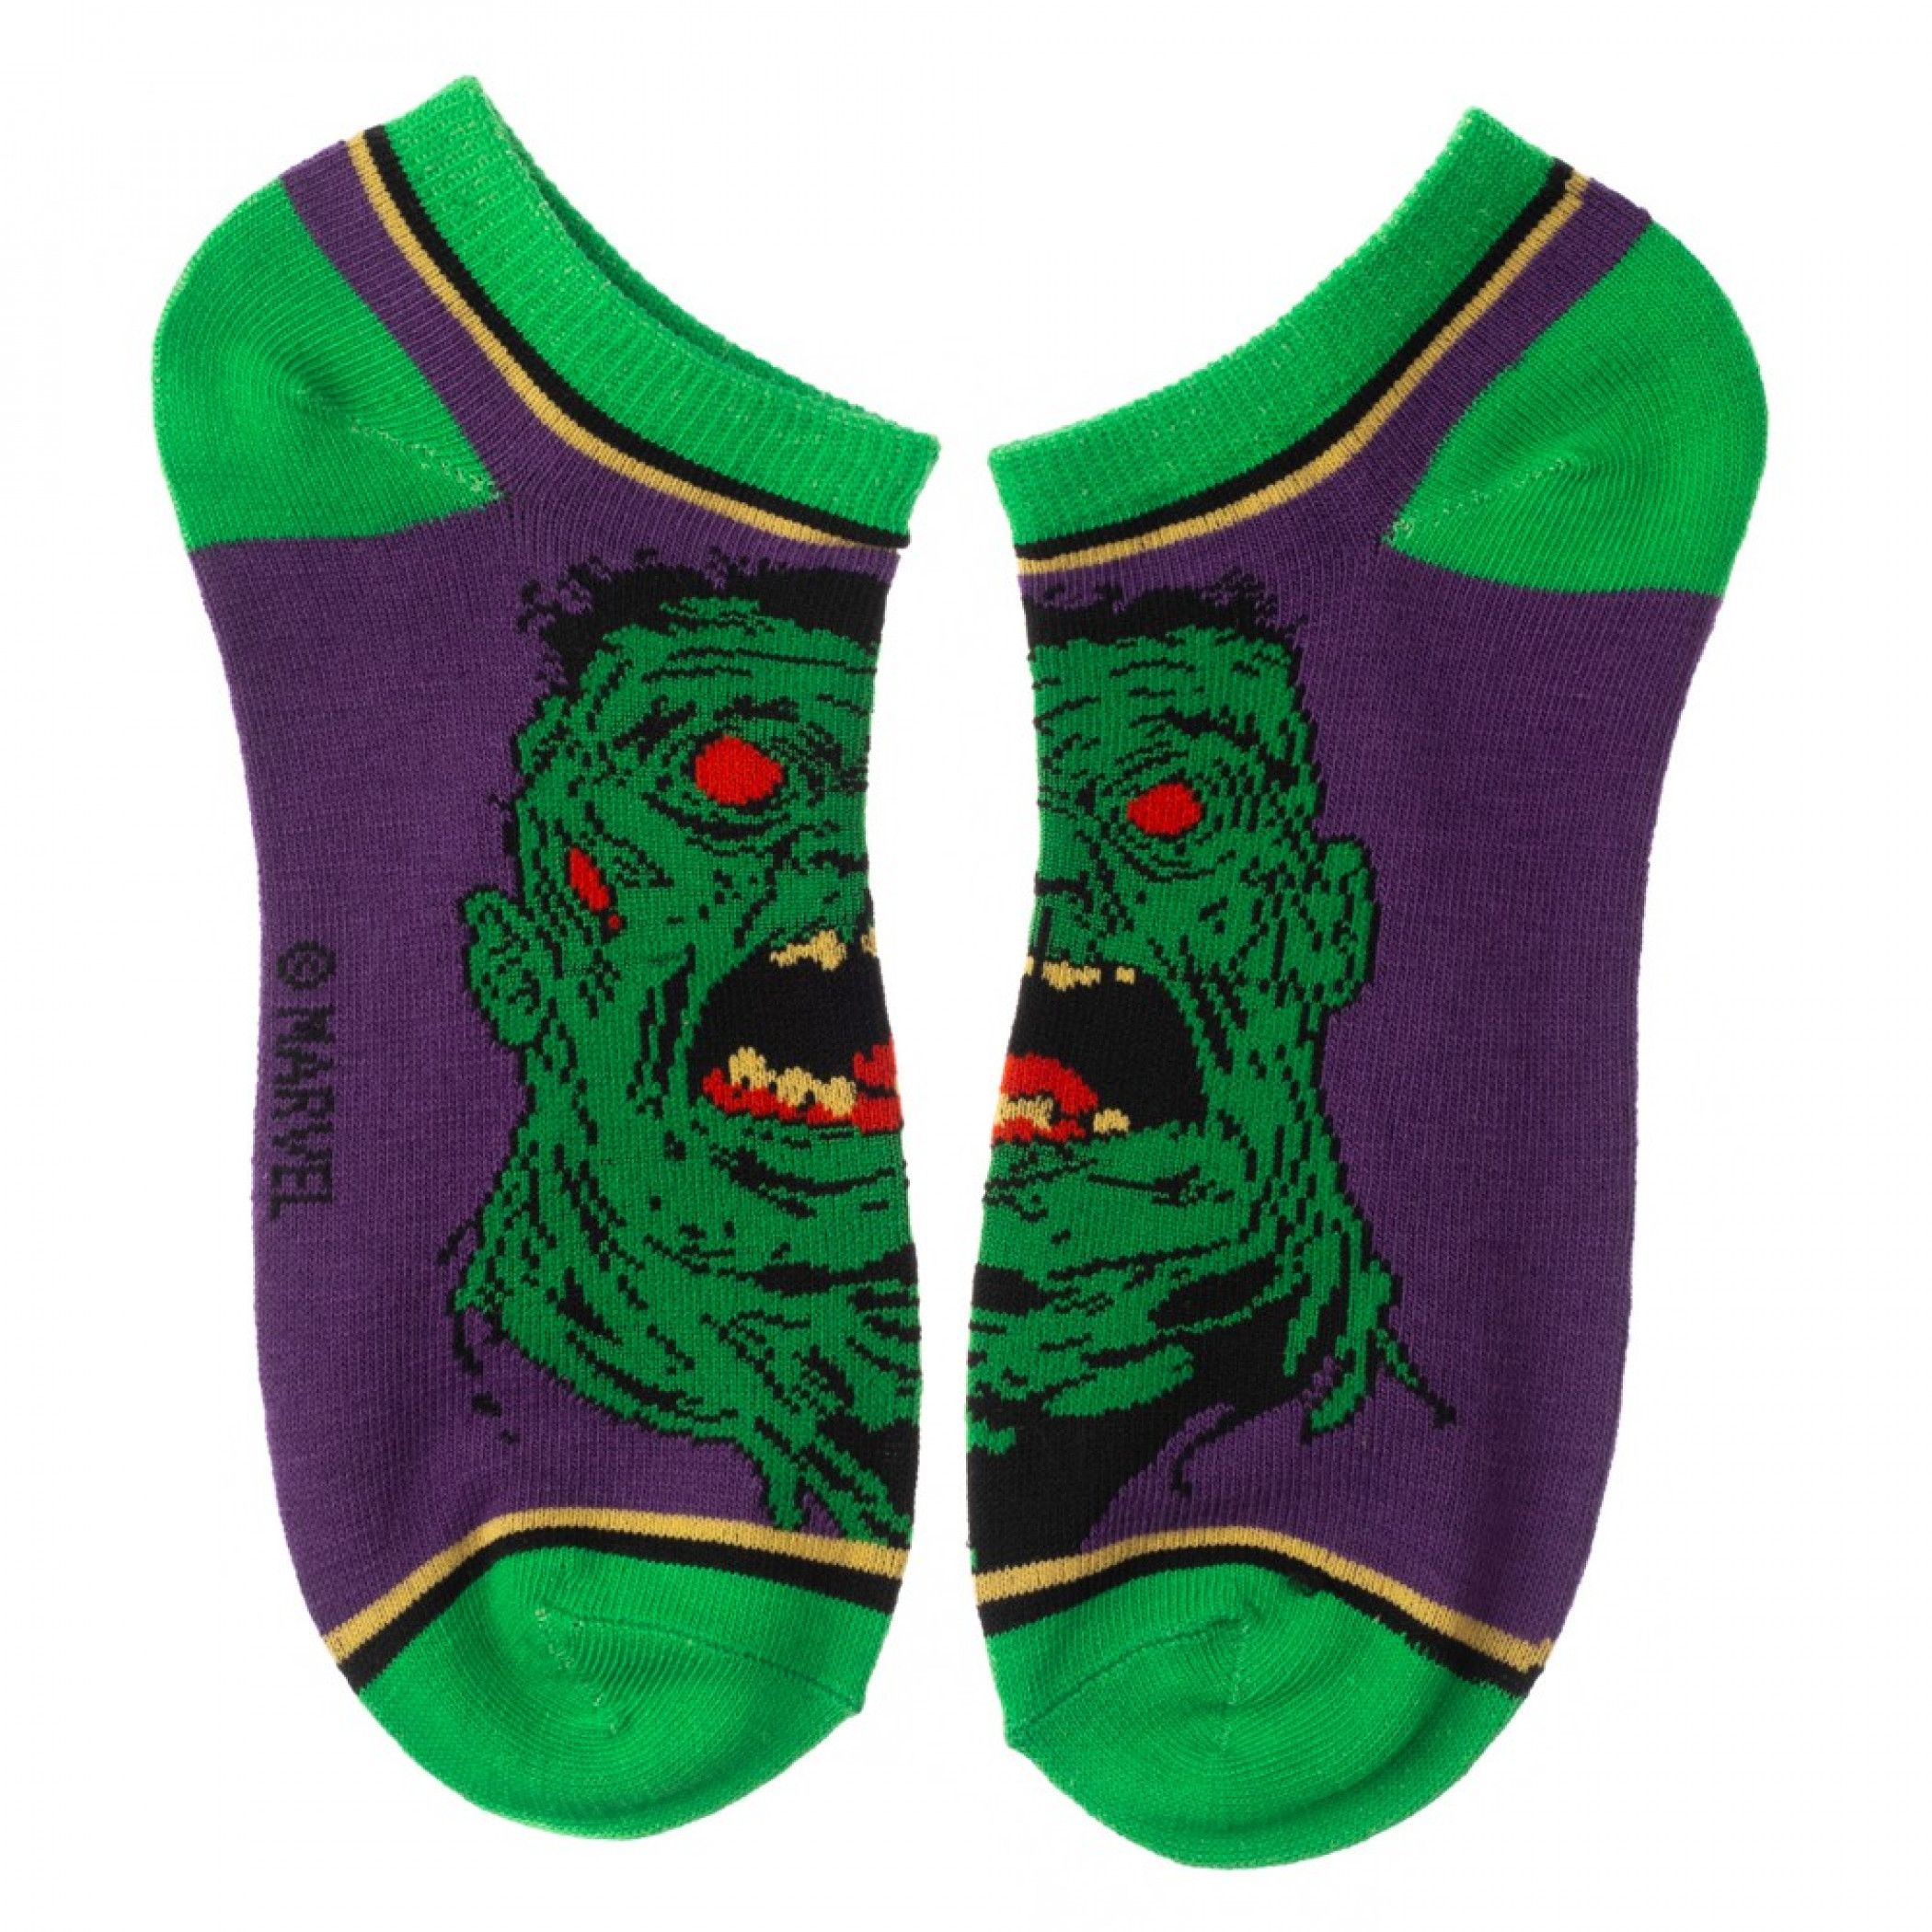 Marvel Zombie Comic Series 5-Pair Pack of Ankle Socks